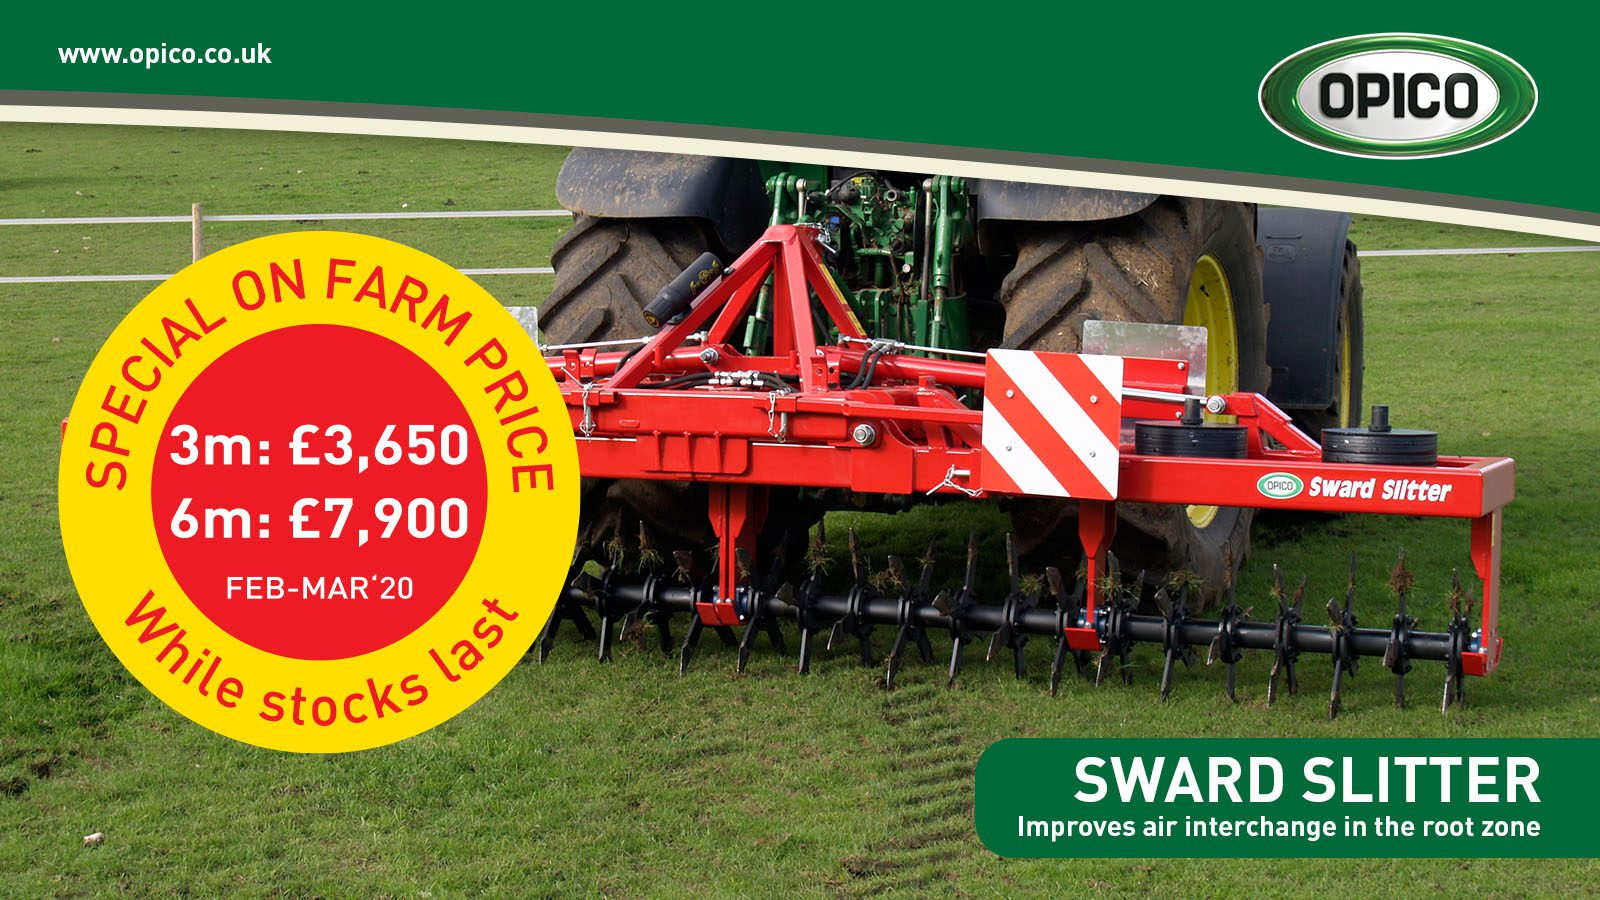 Opico Sward Slitter Special on Farm Price